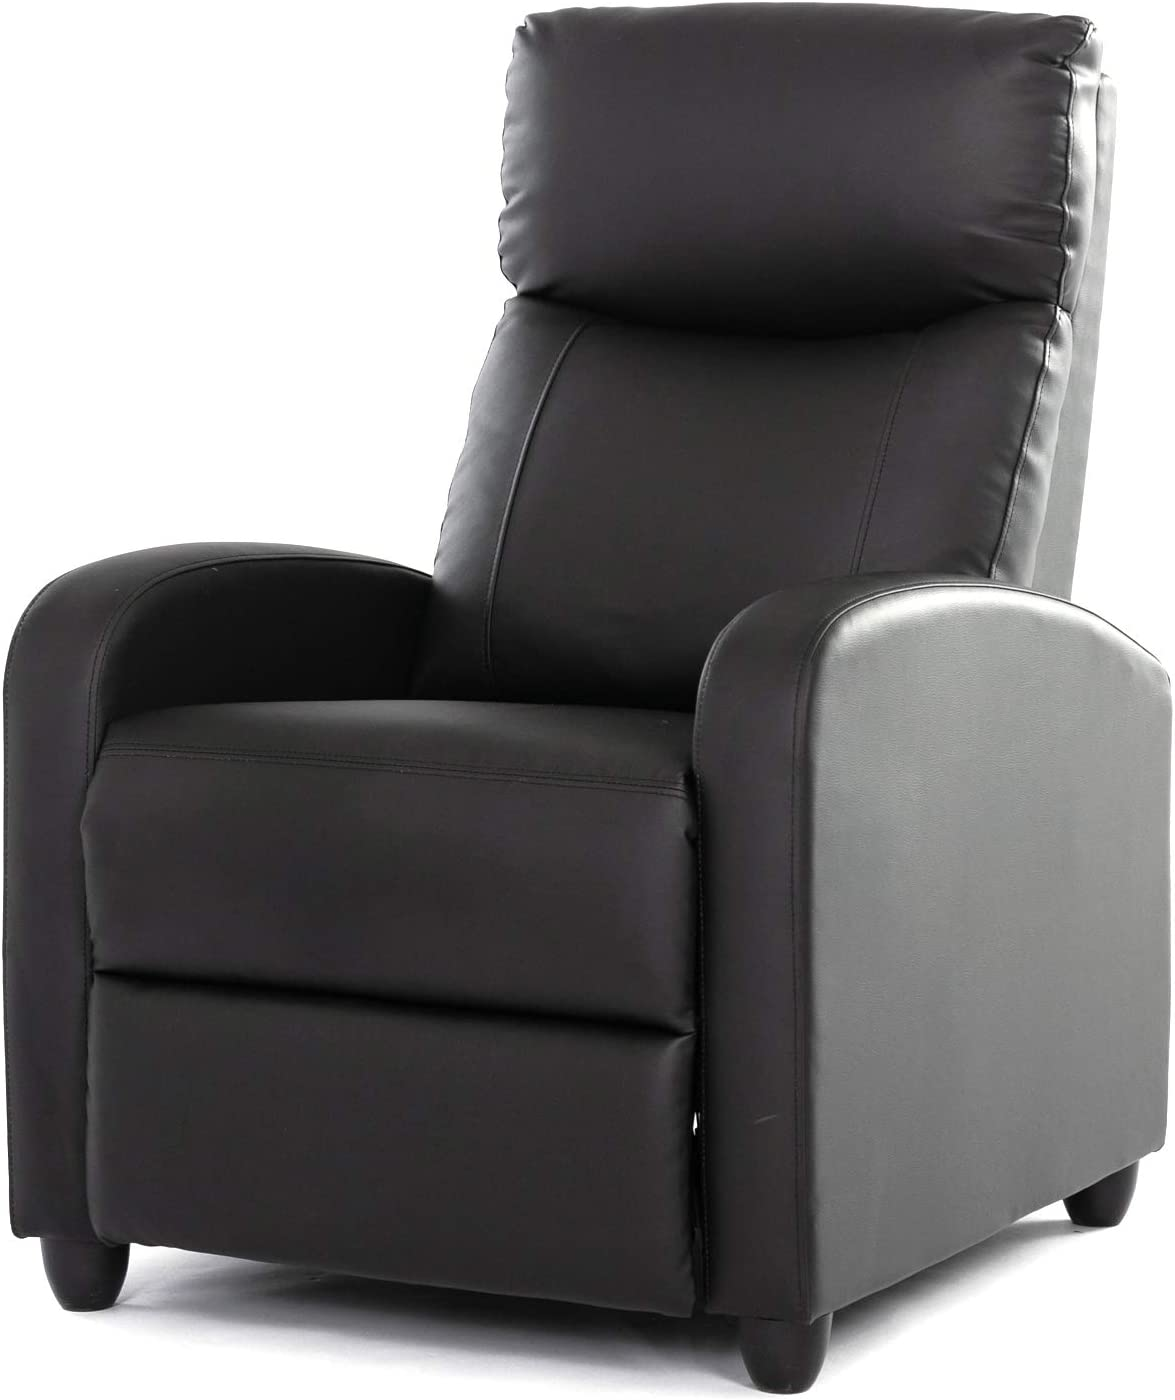 Rimiking Living Room PU Leather Adjustable Single Recliner Sofa Home Theater Seating Reading Chair for Bedroom, Black